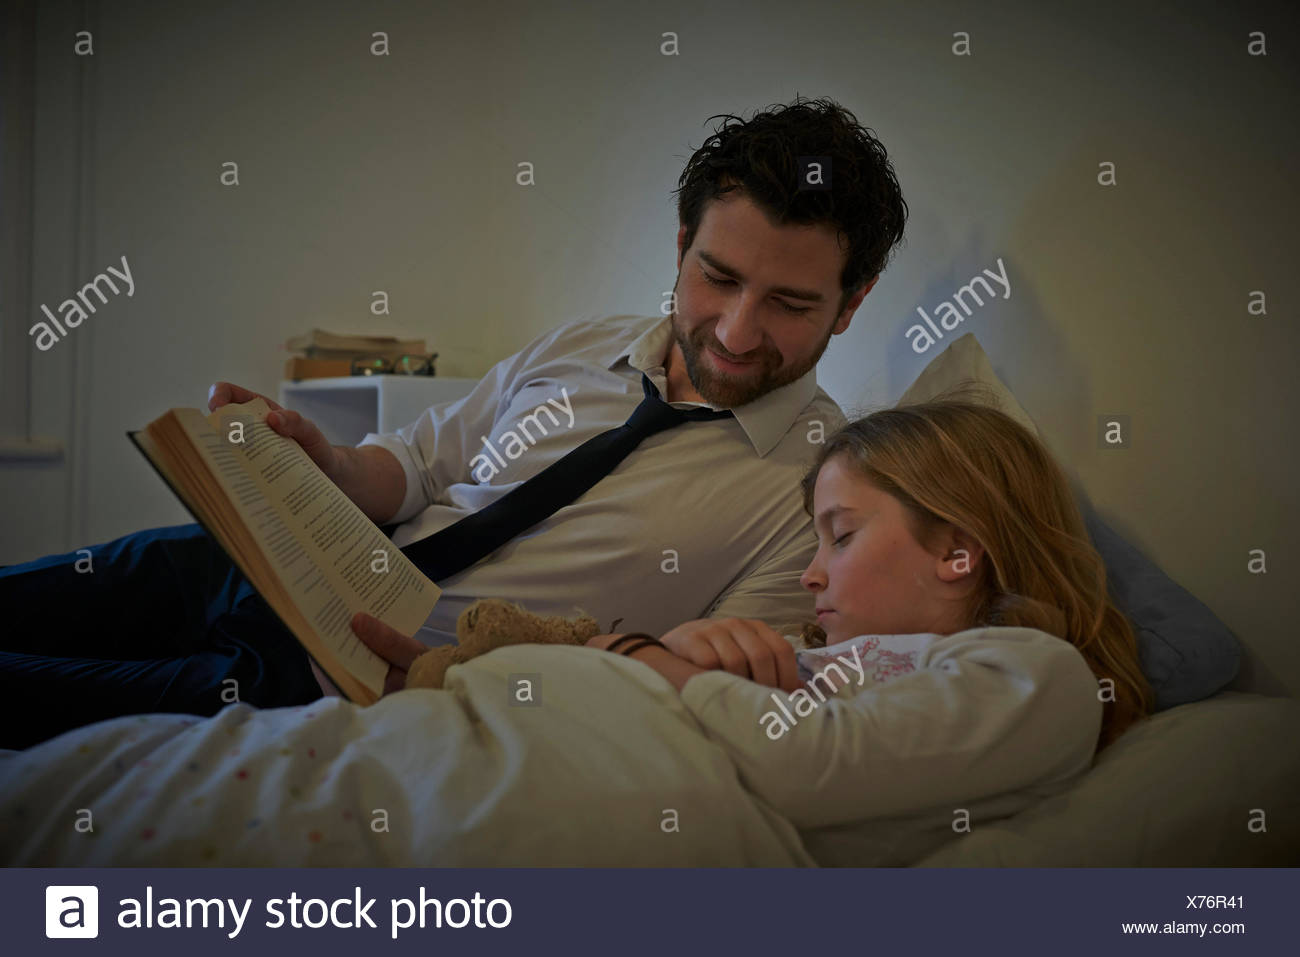 Businessman reading storybook to sleeping daughter at bedtime - Stock Image